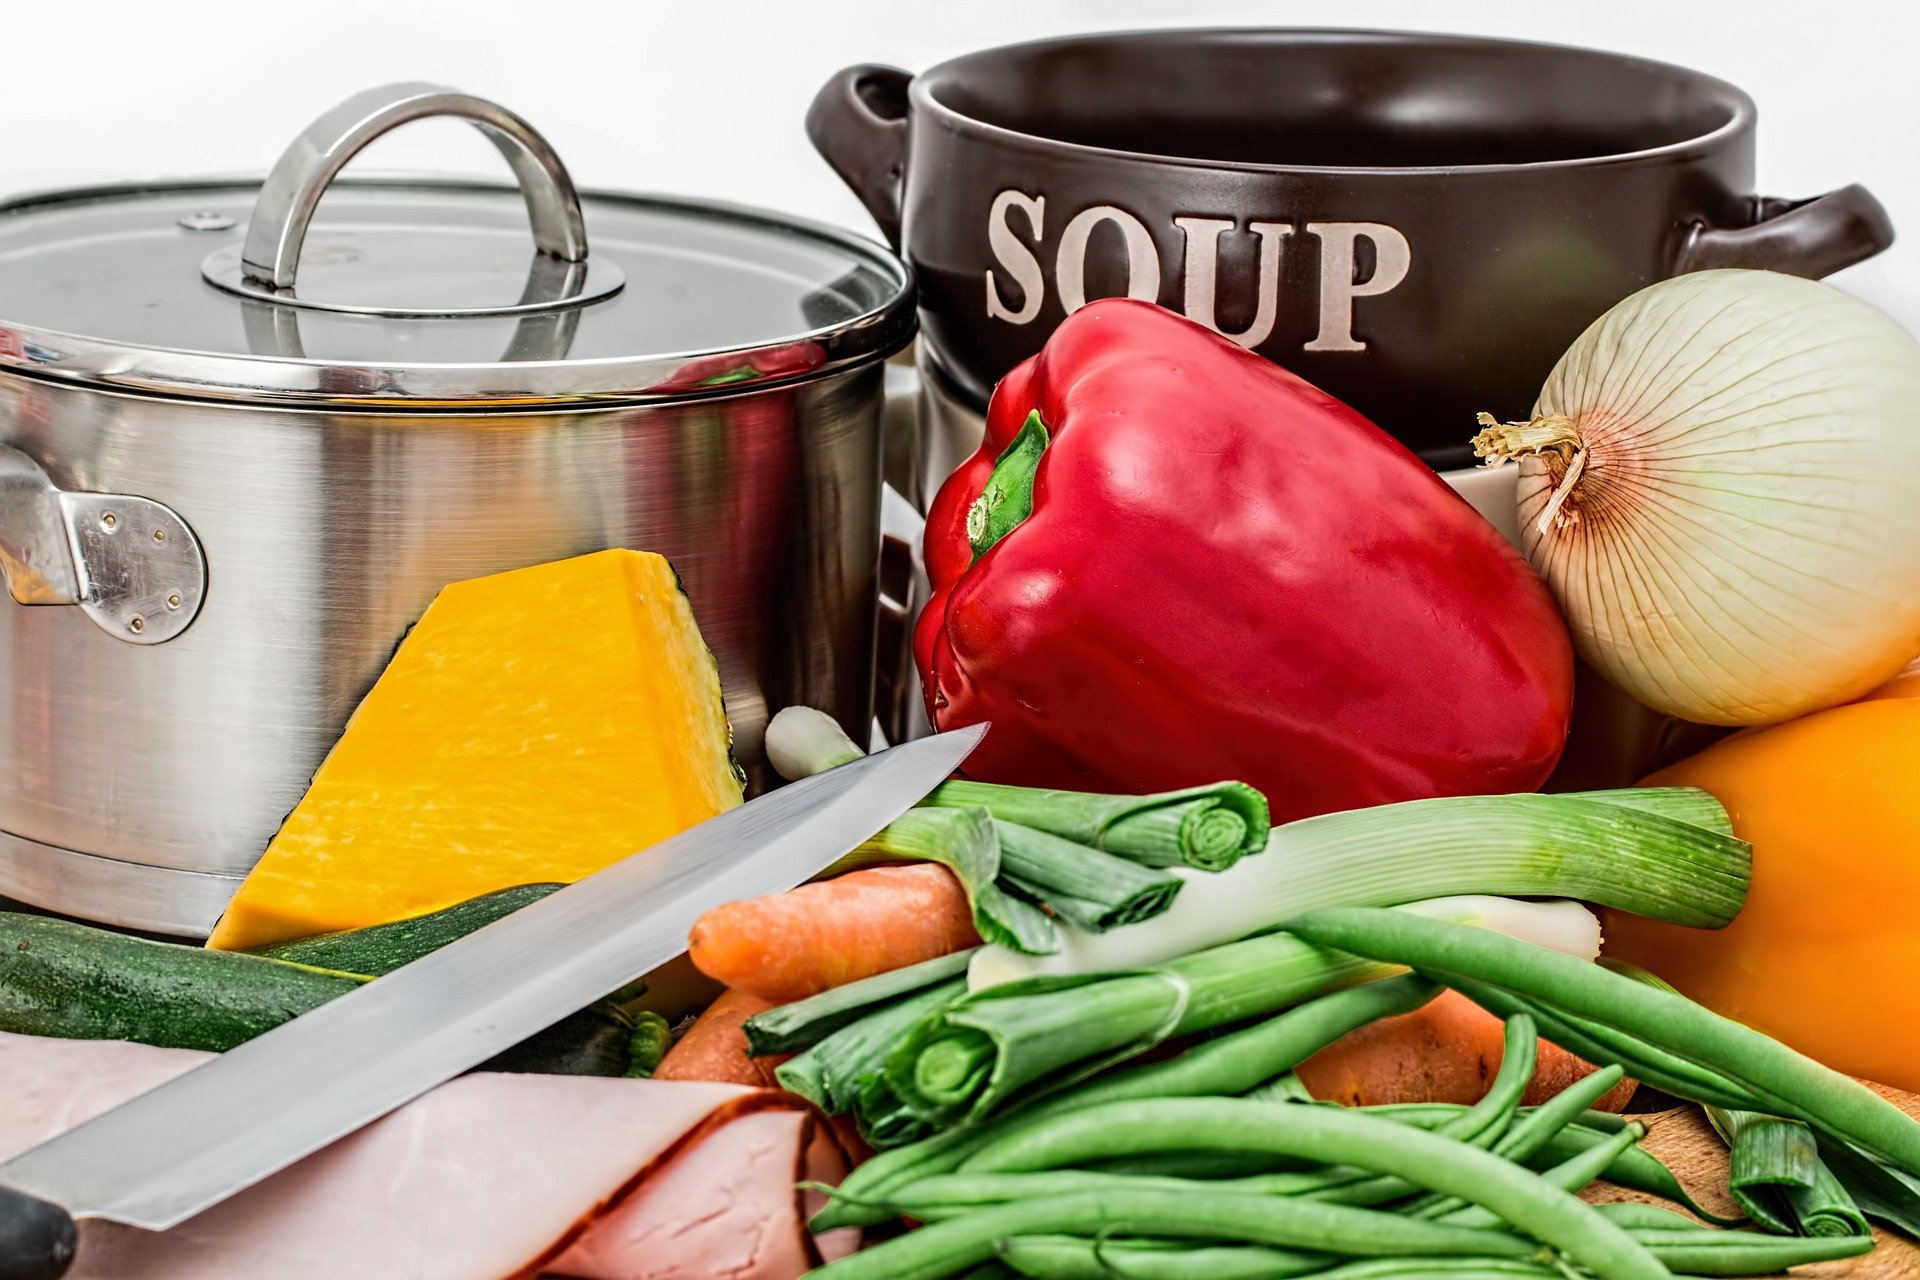 Food Poisoning: 9 Important Preparation Tips That You Need To Practice